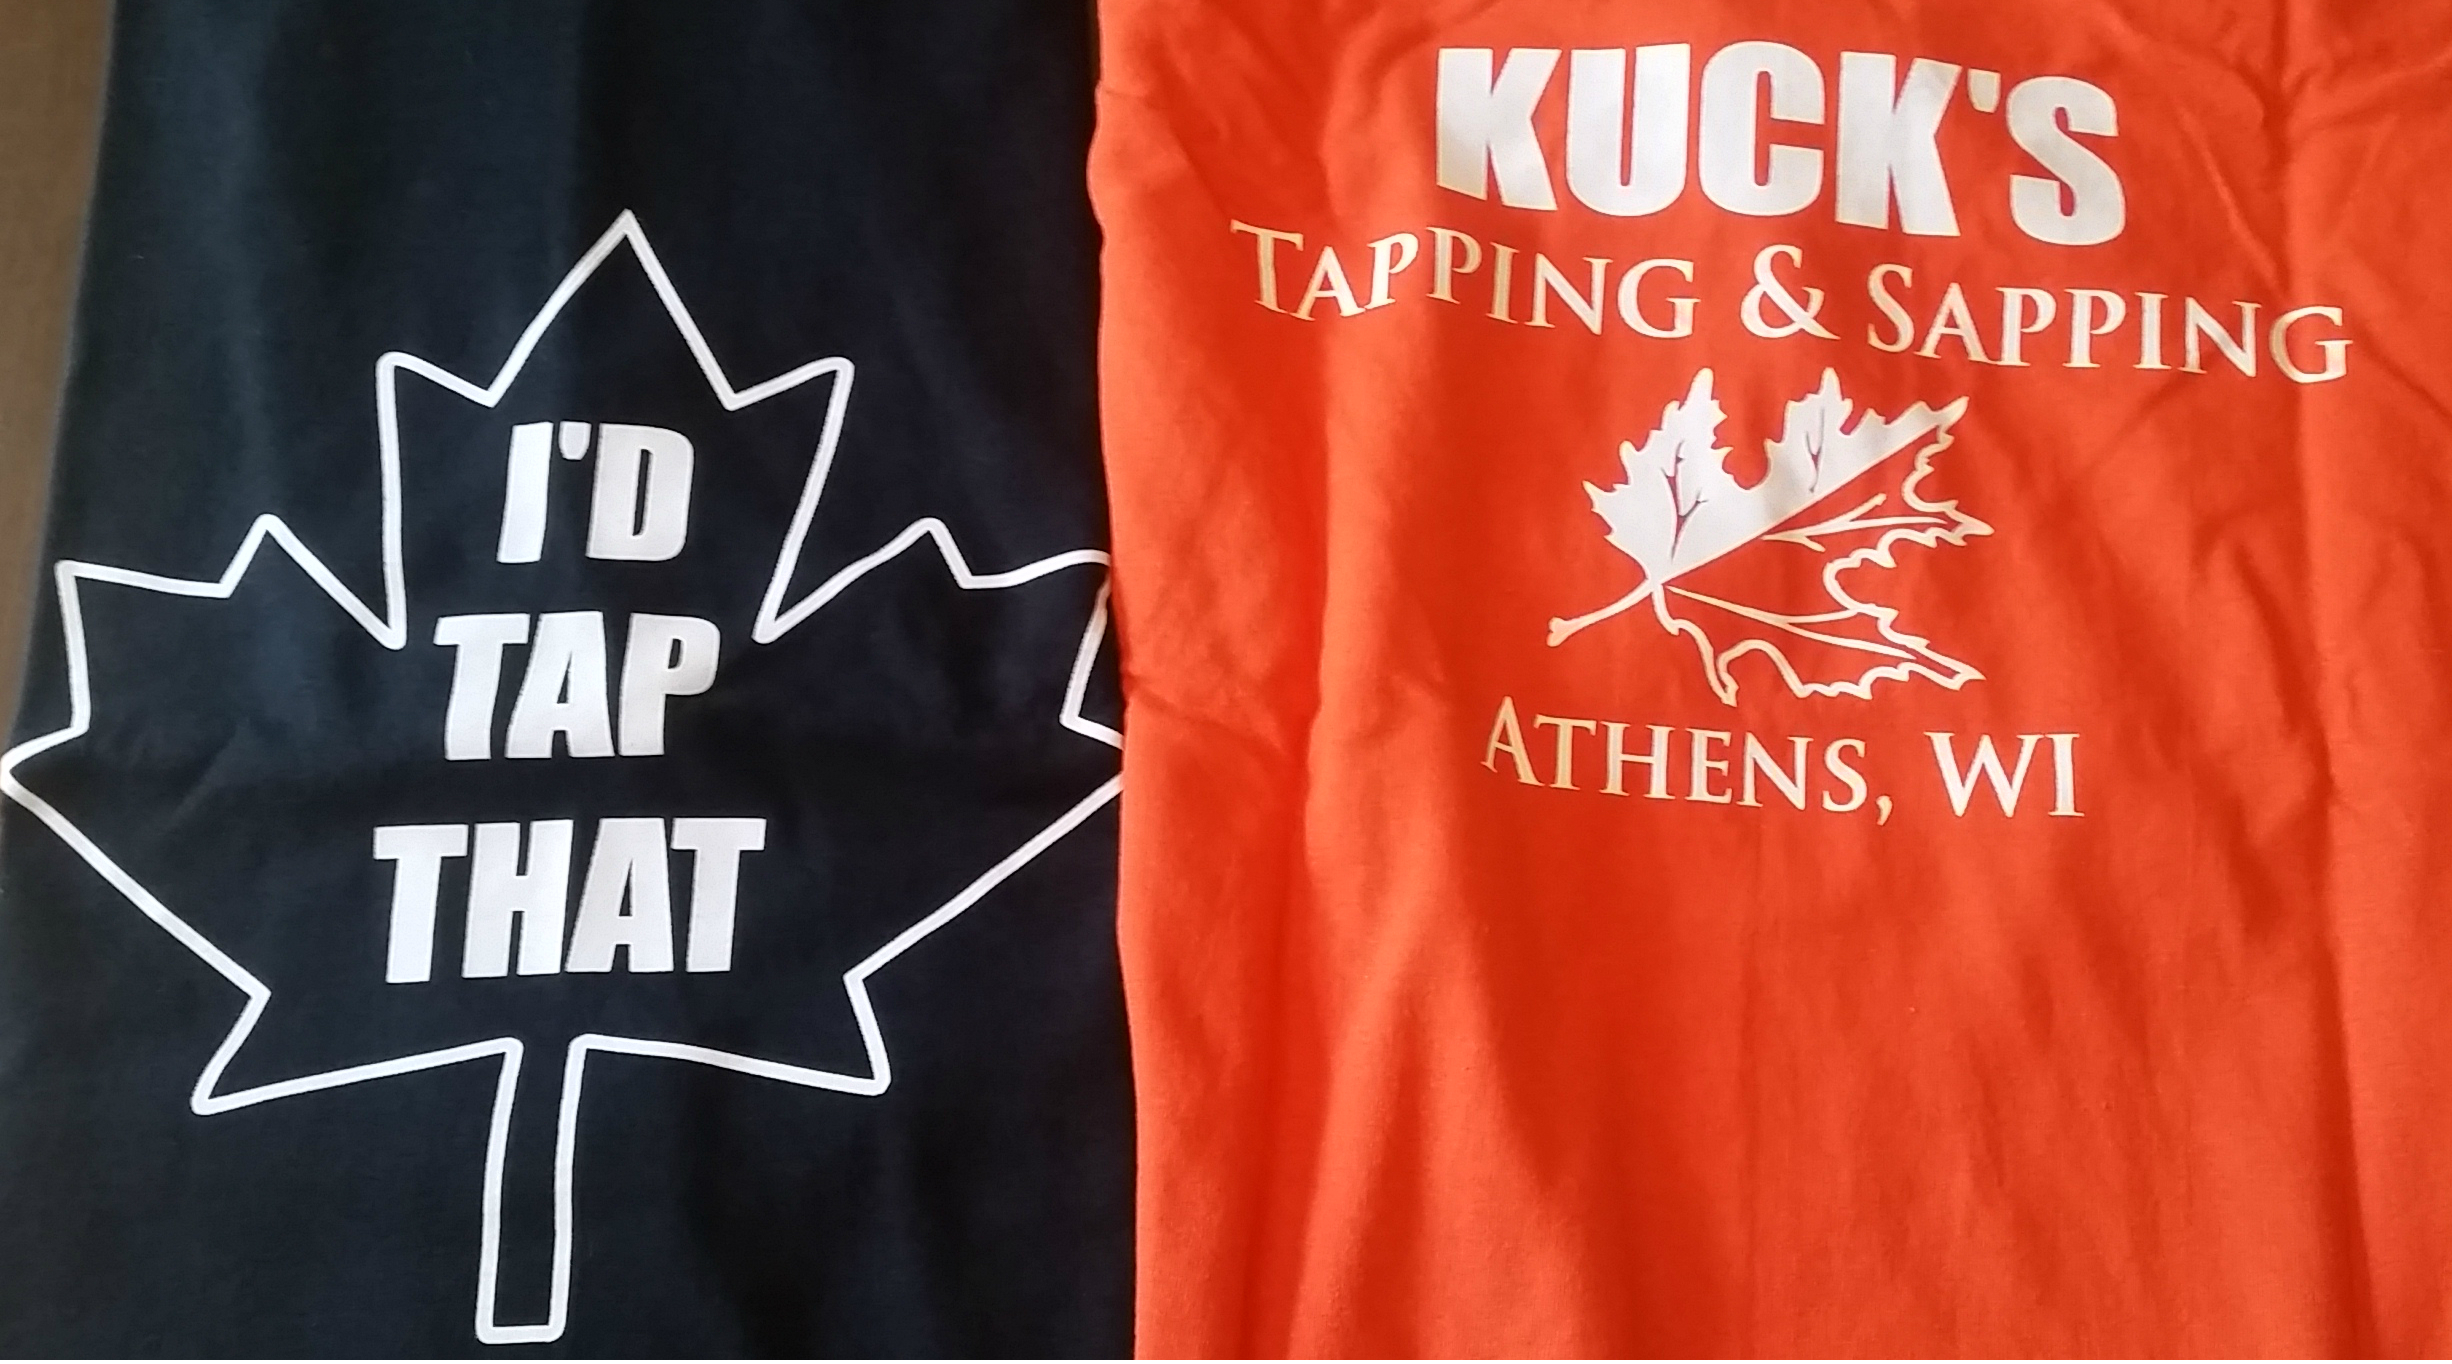 Kuck's Tapping & Sapping image